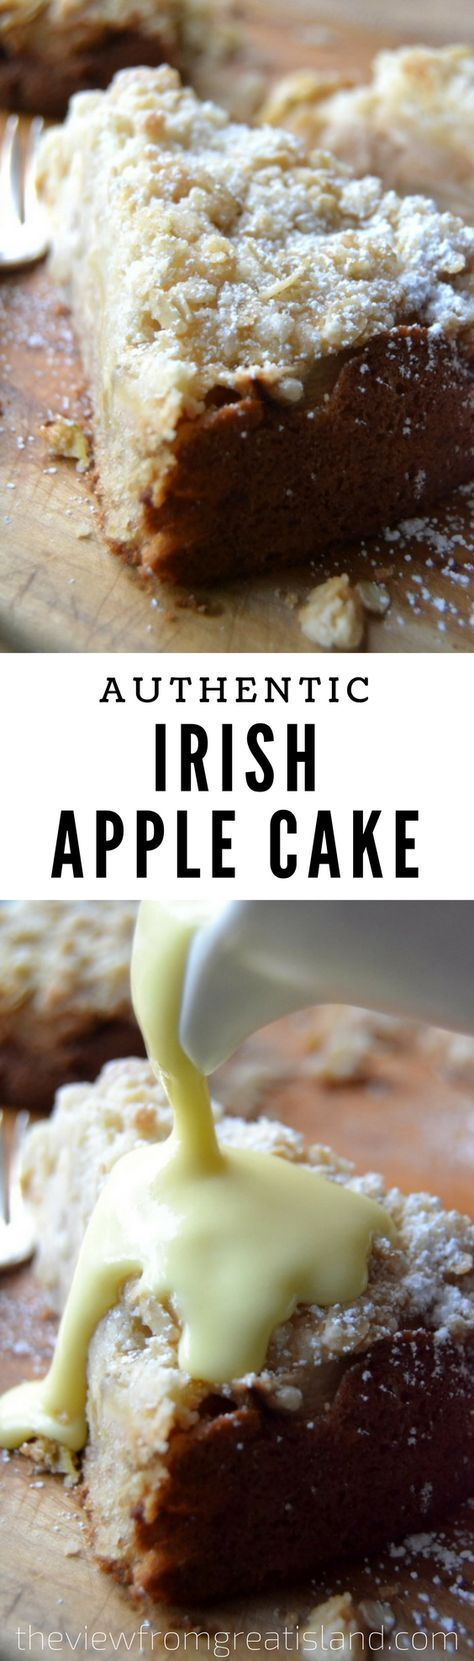 This is an authentic old fashioned Irish apple cake, the kind that would be made throughout the apple harvest season all over Ireland, where every farmhouse has its own prized version of the recipe.